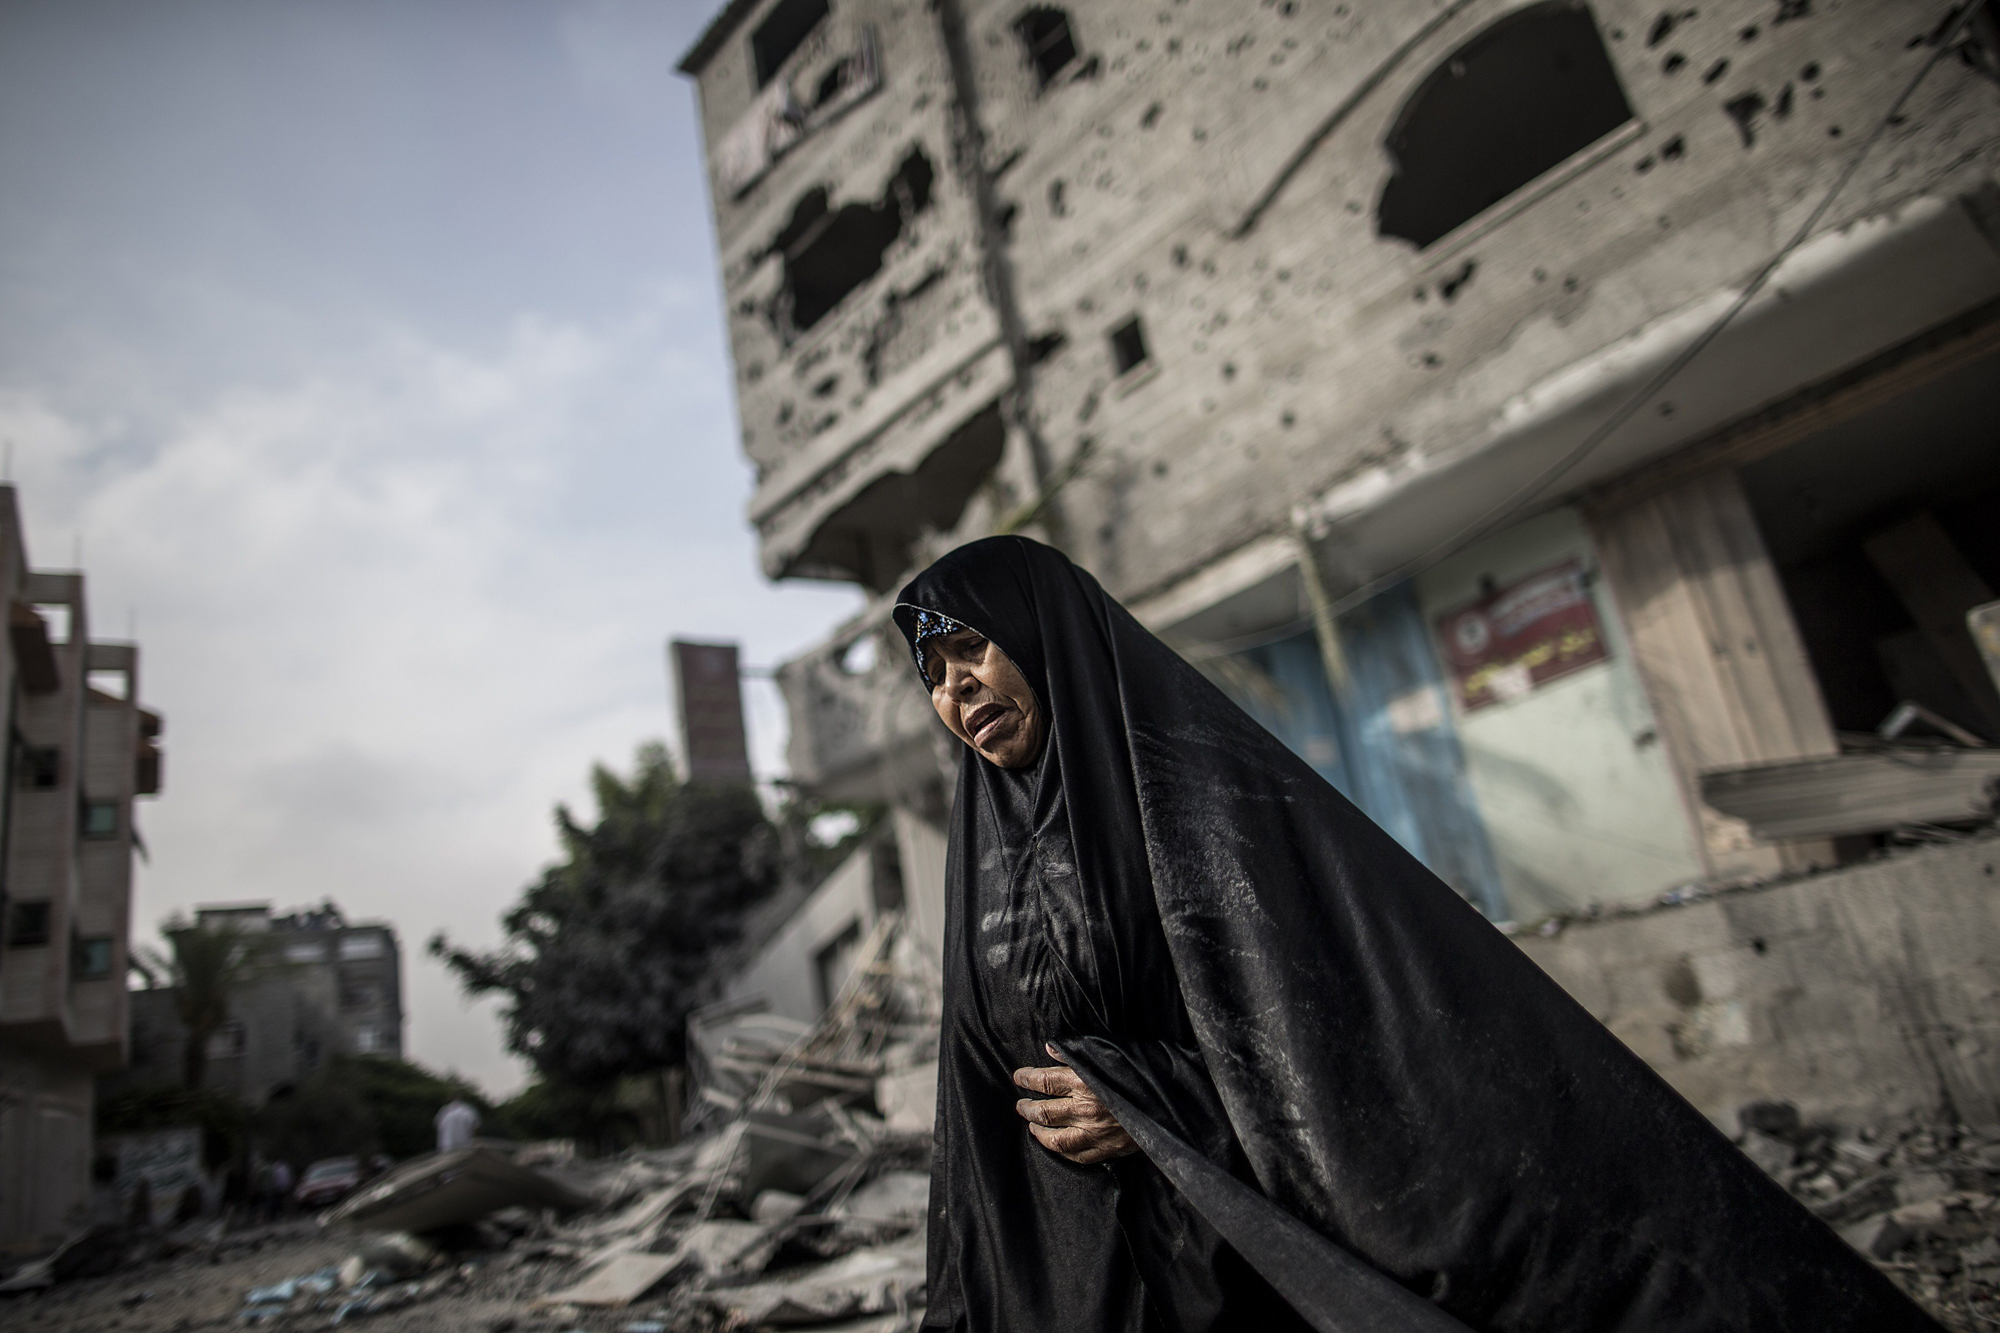 A Palestinian woman stands in front of buildings damaged by Israeli bombardment in the Jabalia district of the northern Gaza Strip on July 24, 2014.